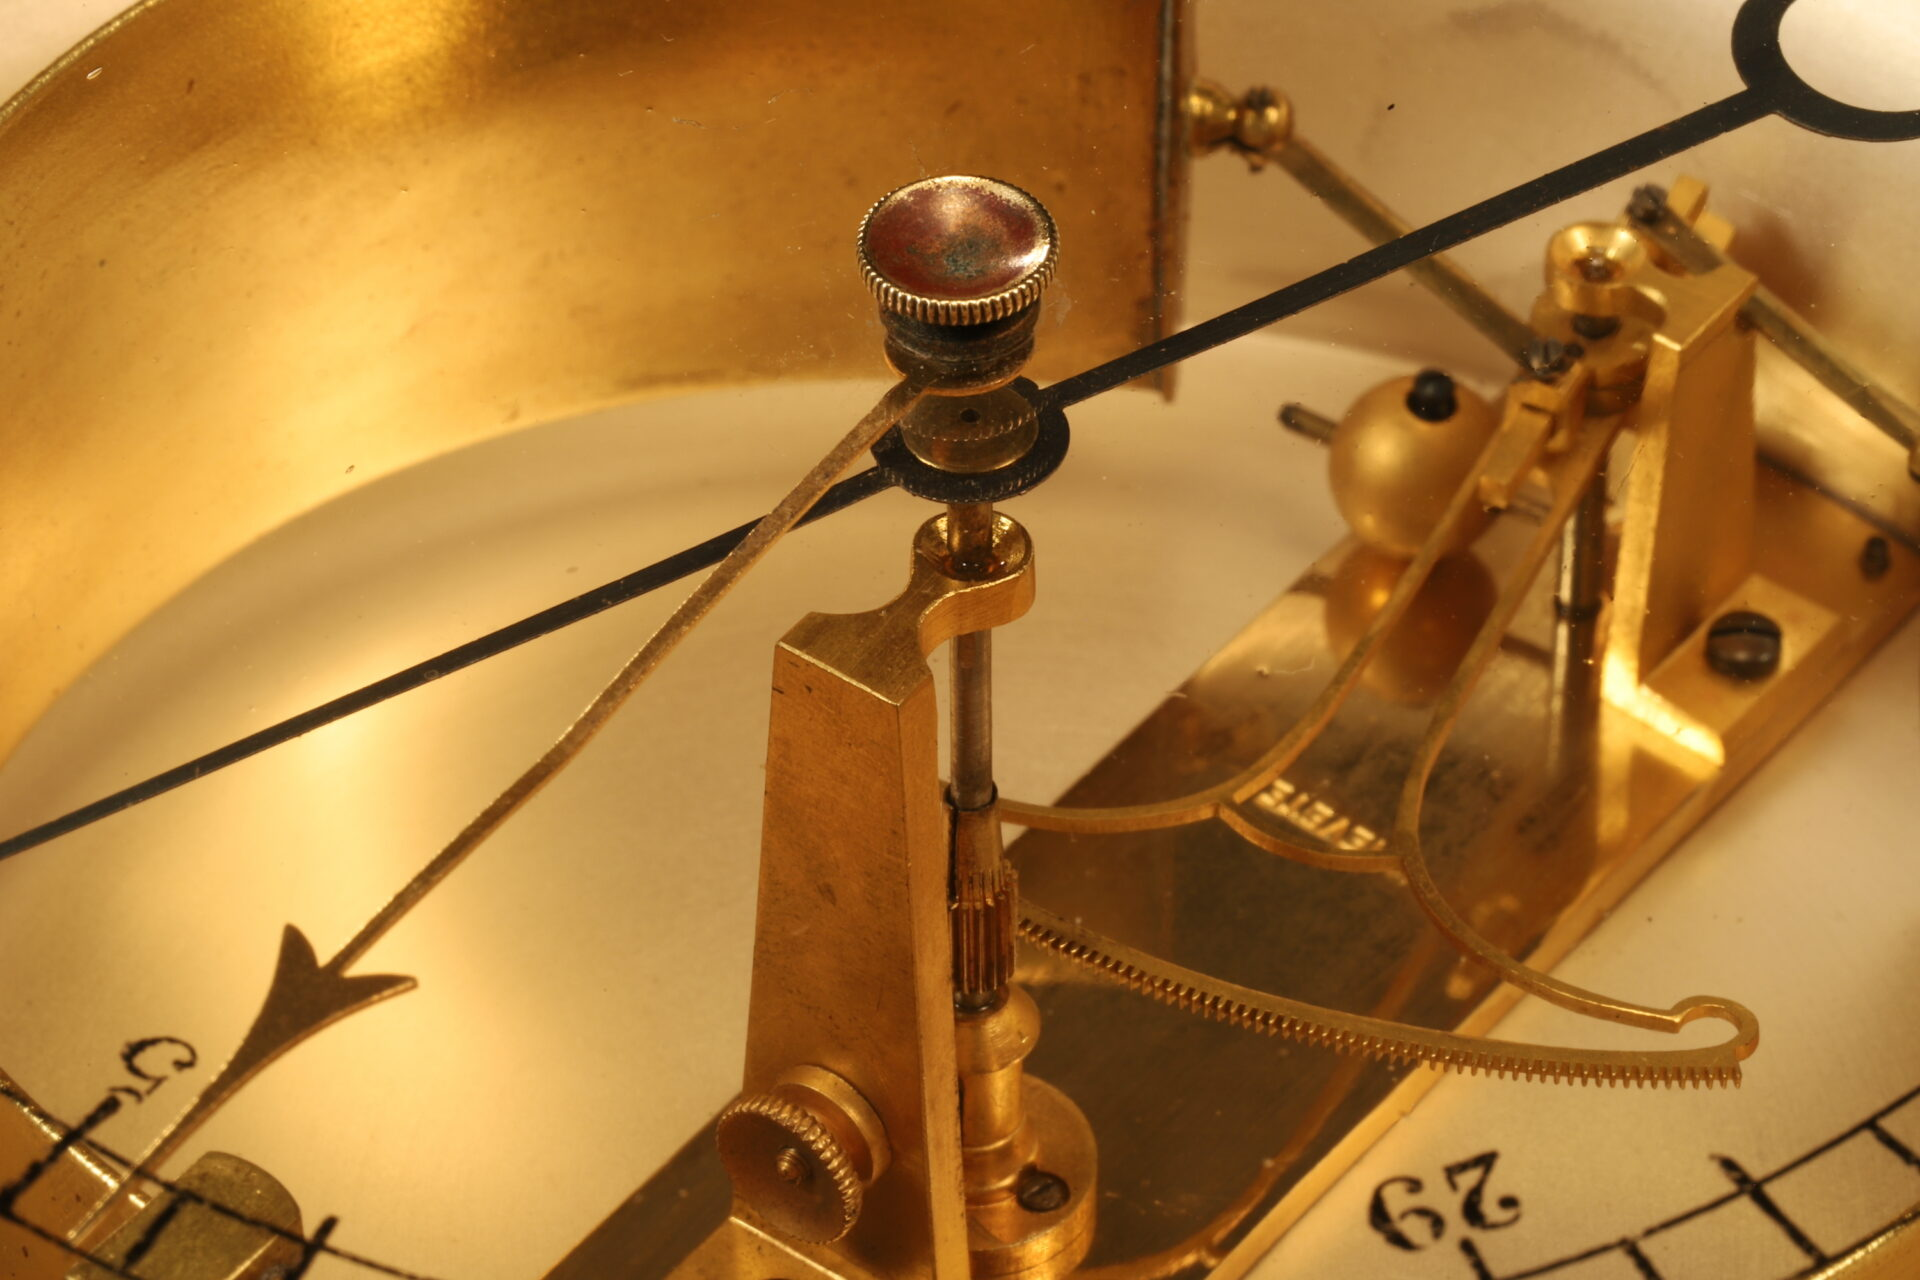 Close up of movement from Bourdon Barometer No 15178 c1880 showing rack and fan